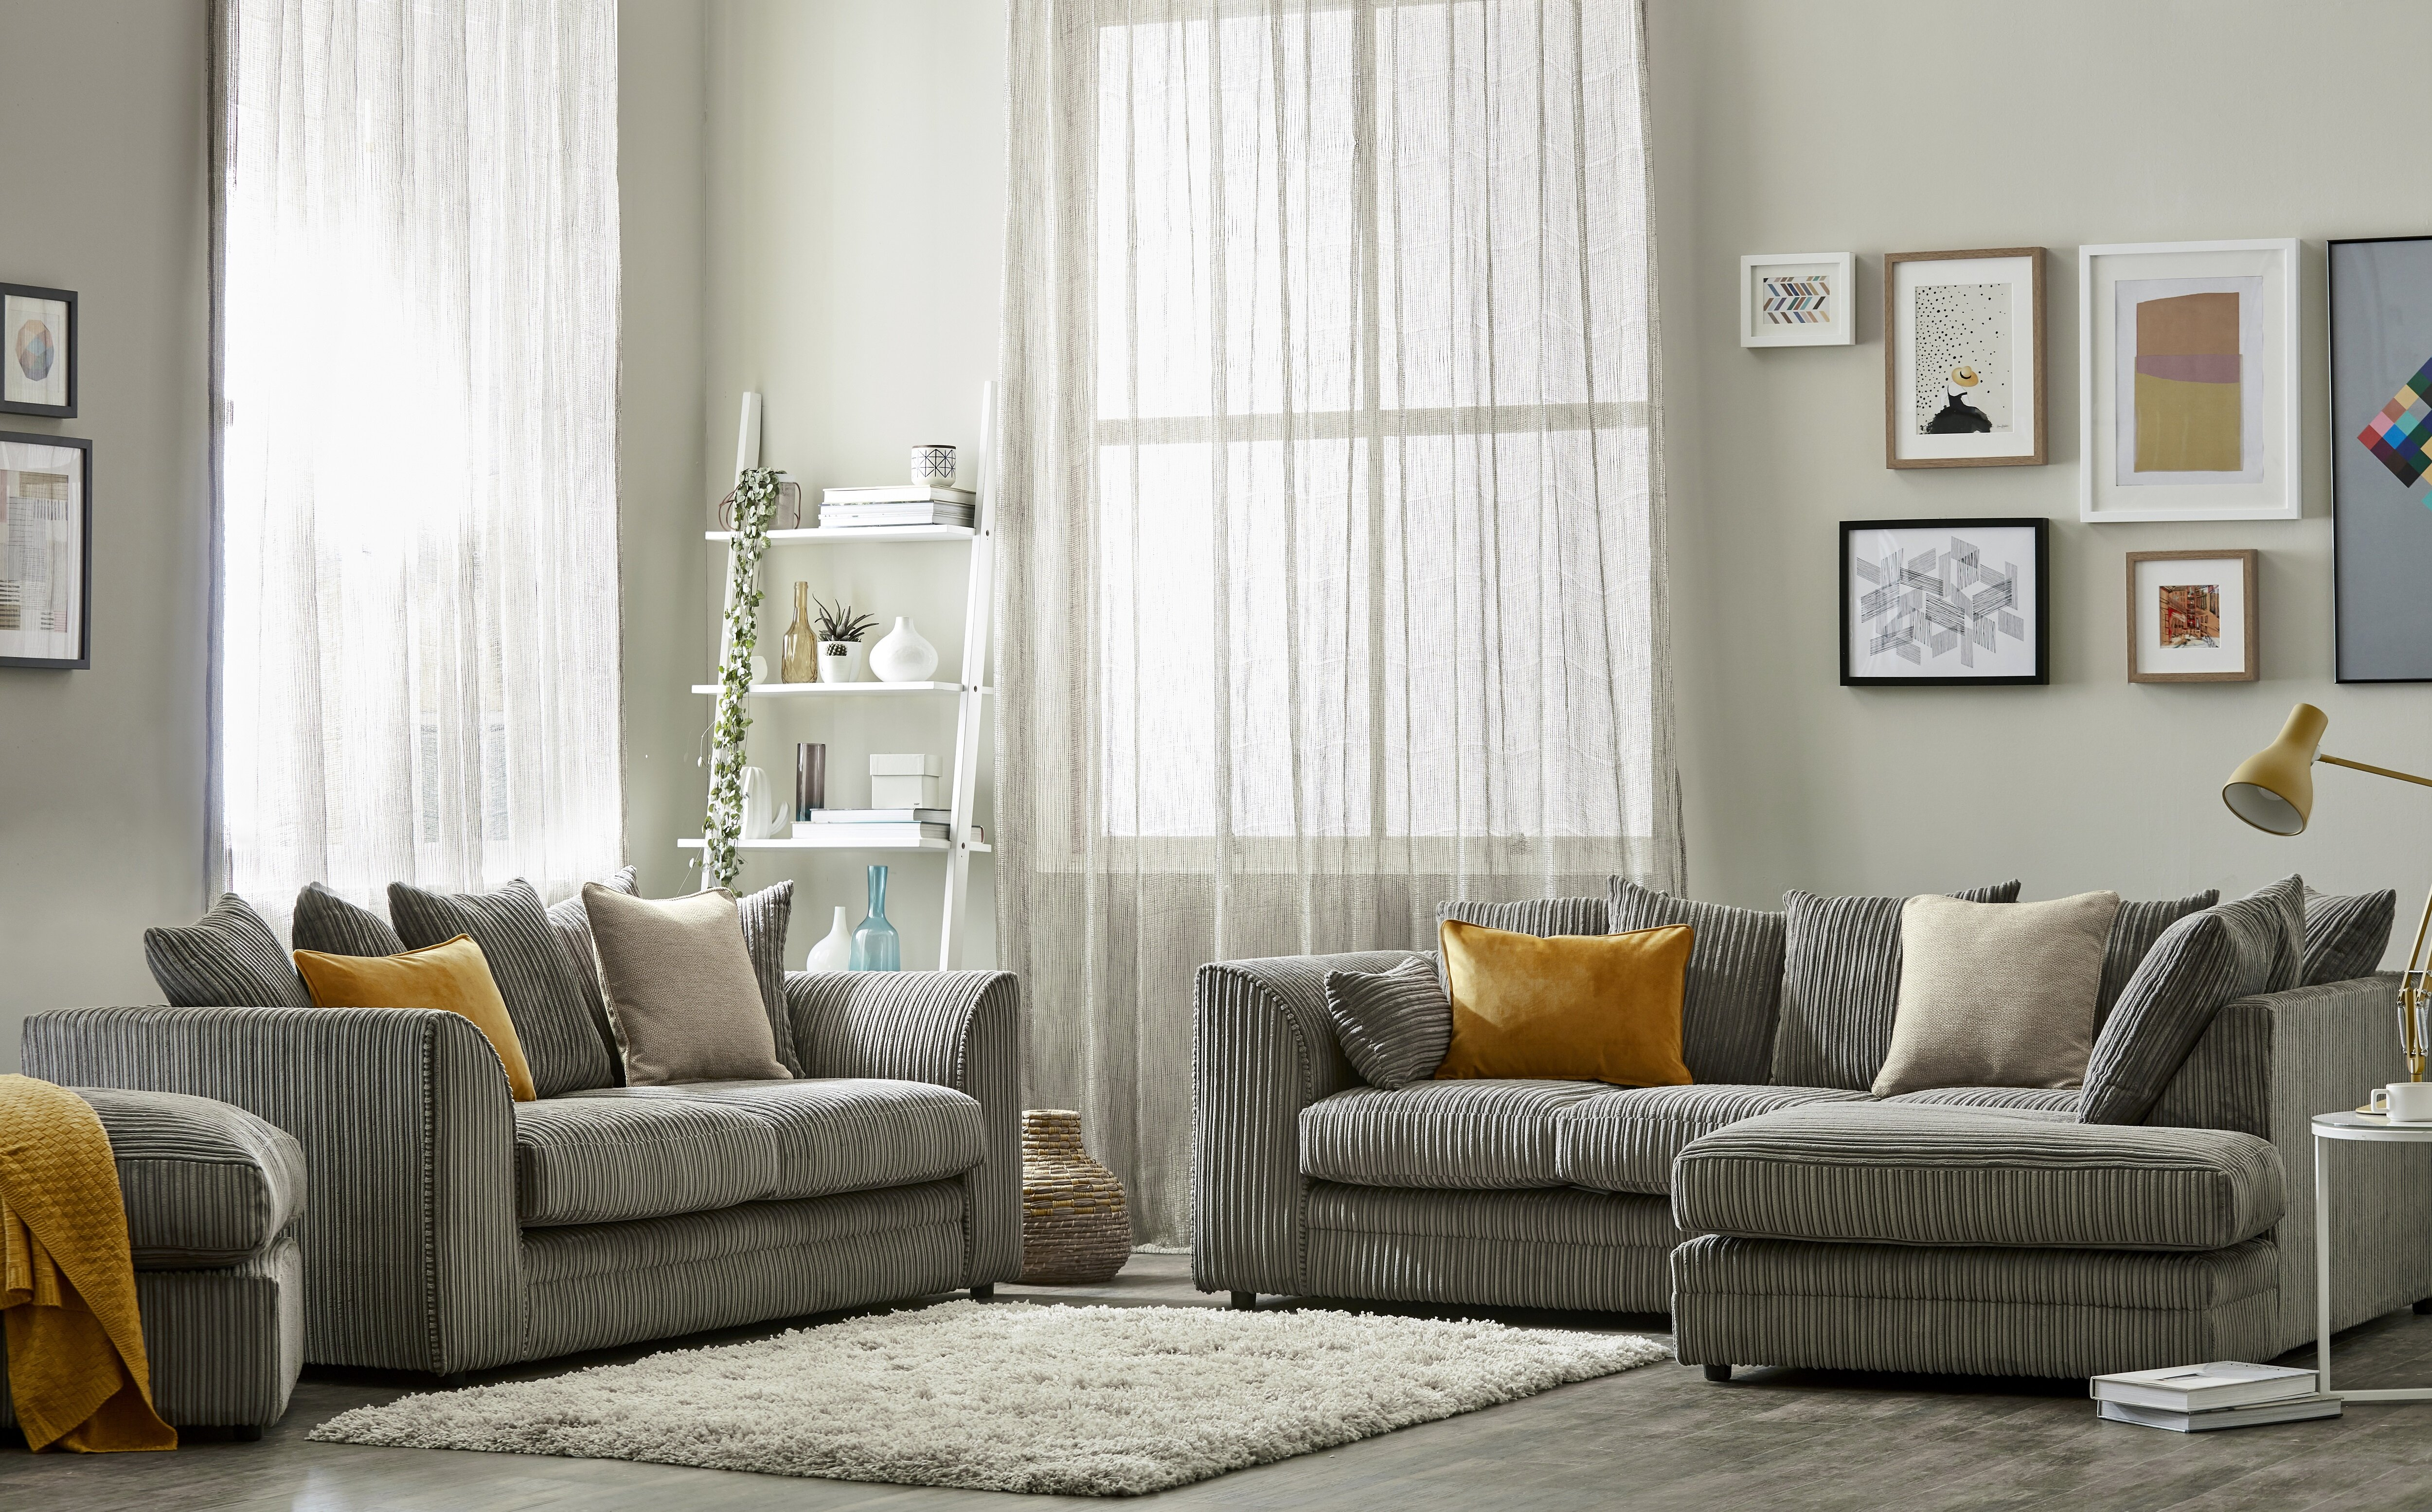 Stupendous Darcey 4 Piece Sofa Set Pdpeps Interior Chair Design Pdpepsorg